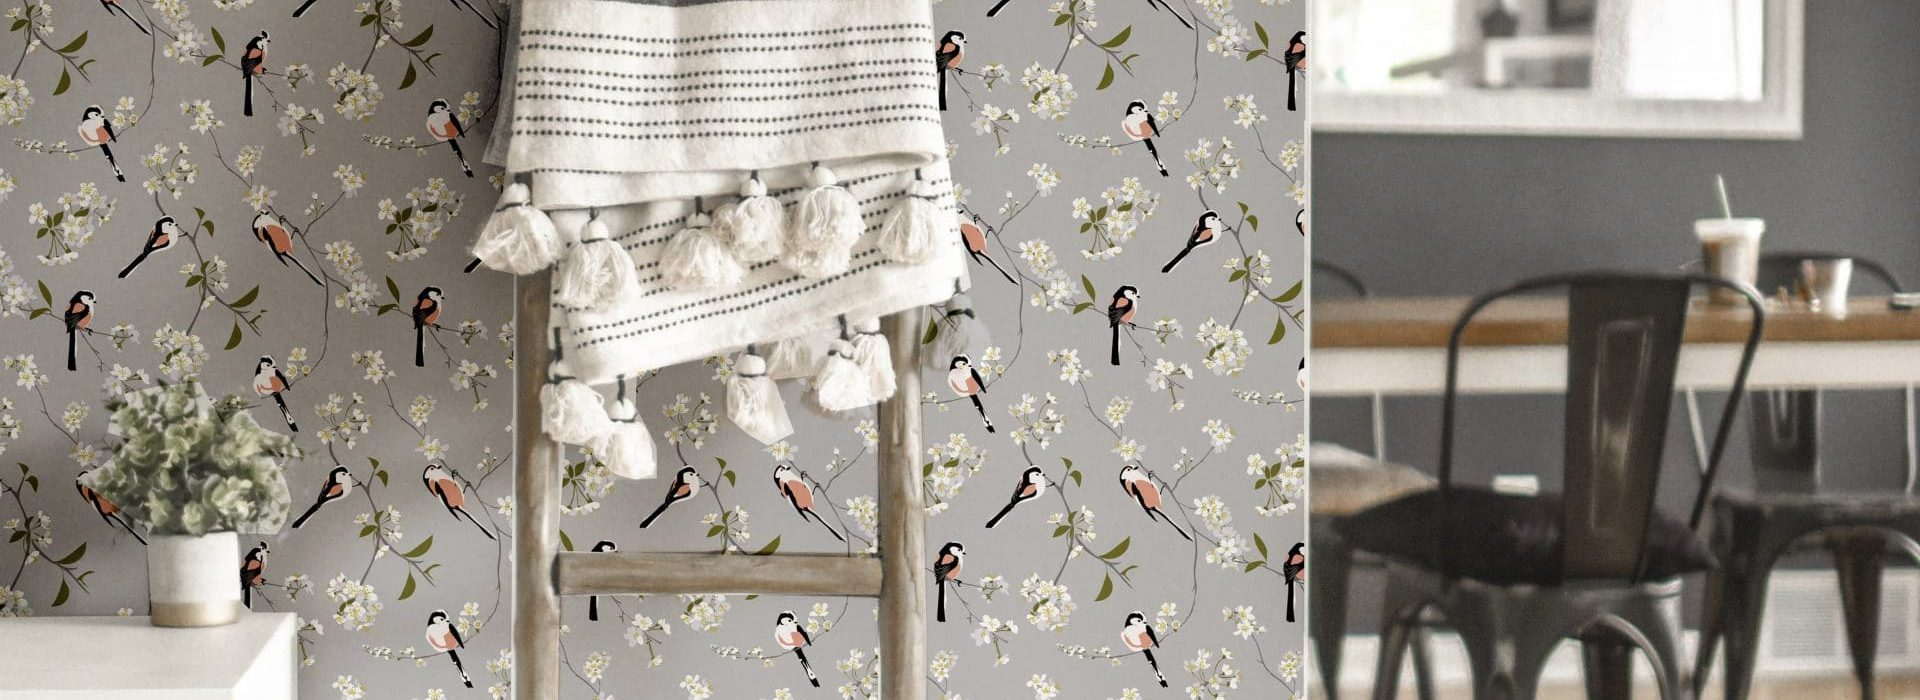 RSPB Blossom and Bird grey wallpaper designed by Lorna Syson